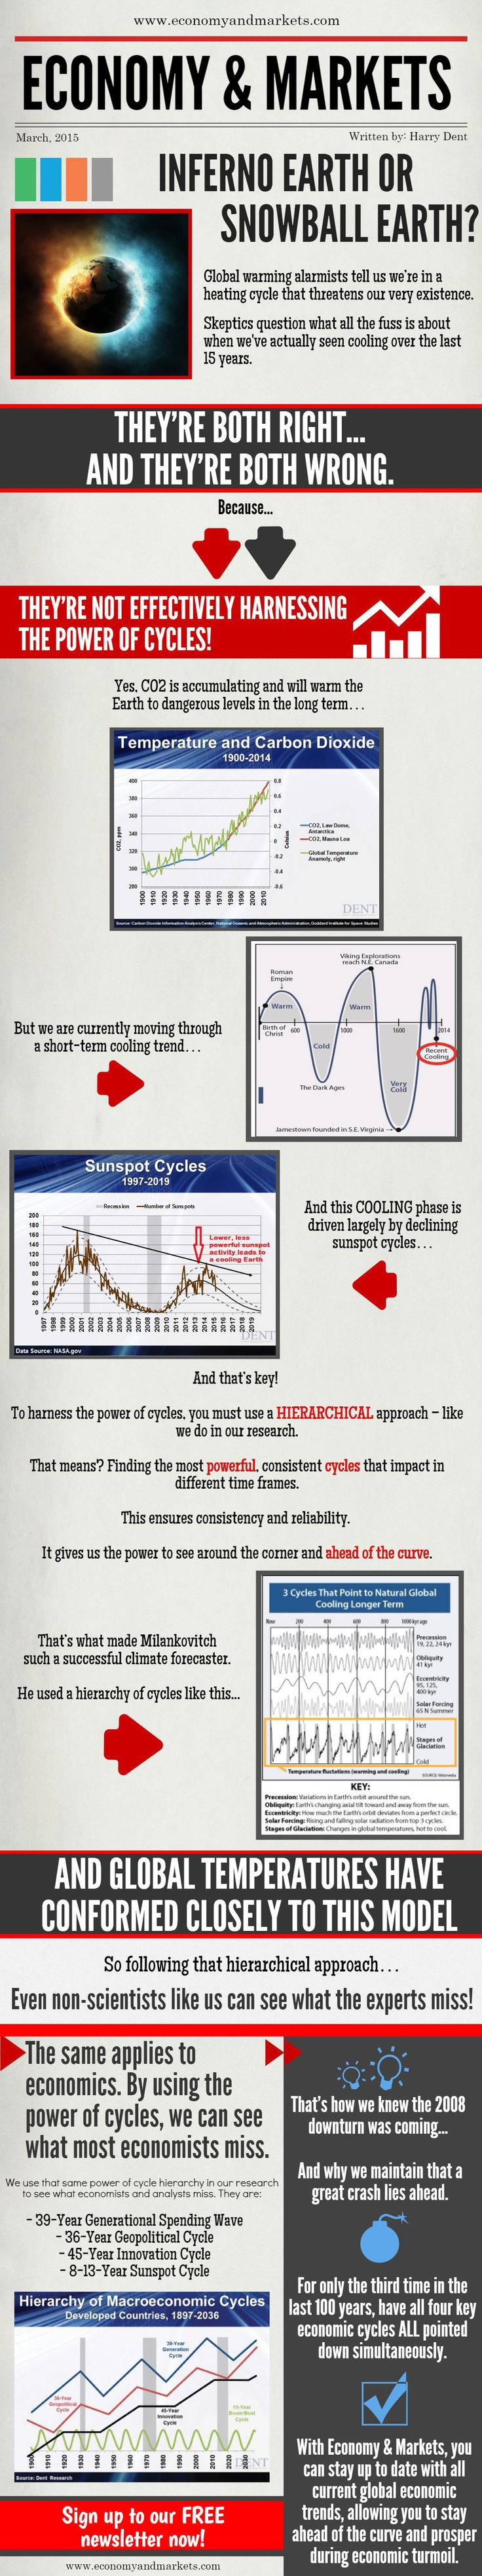 Inferno Earth or Snowball Earth?  Global Warming alarmists tell us we're in a heating cycle that threatens our very existence. Skeptics question what all the fuss is about when we've actually seen cooling over the last 15 years. They're both right... and they're both wrong. Learn the full story here in this infographic!